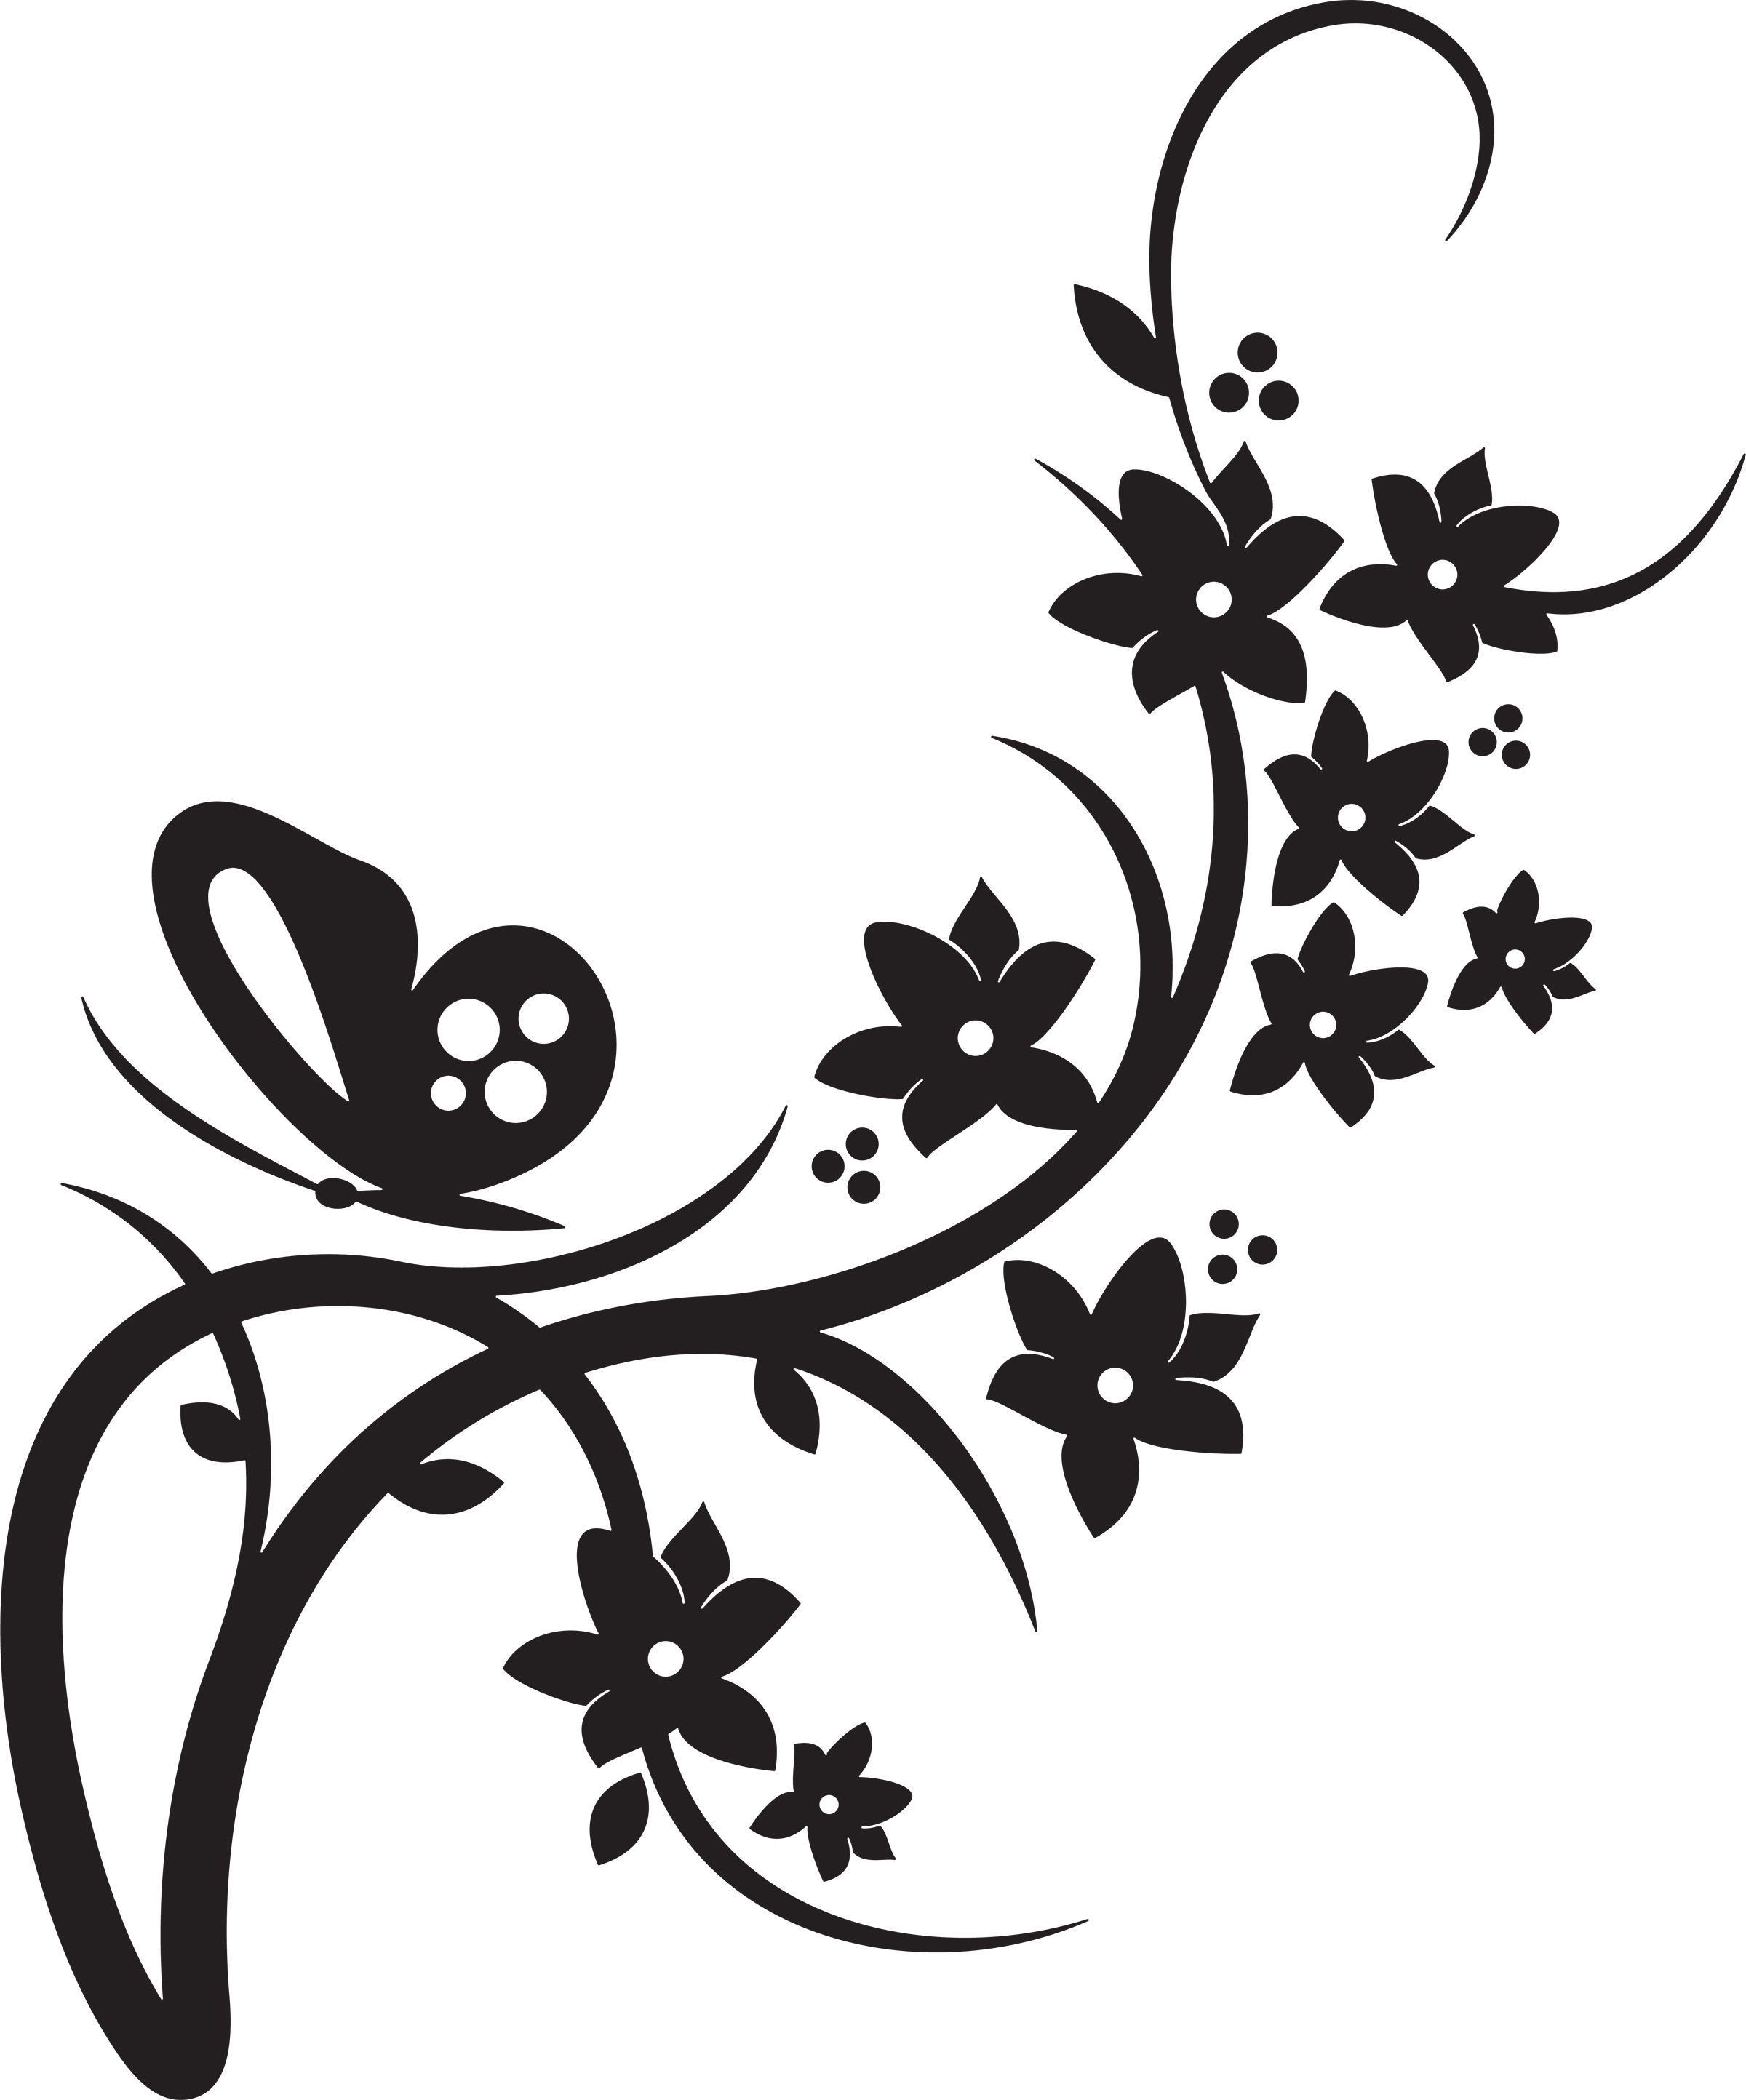 clipart of a wedding - photo #24